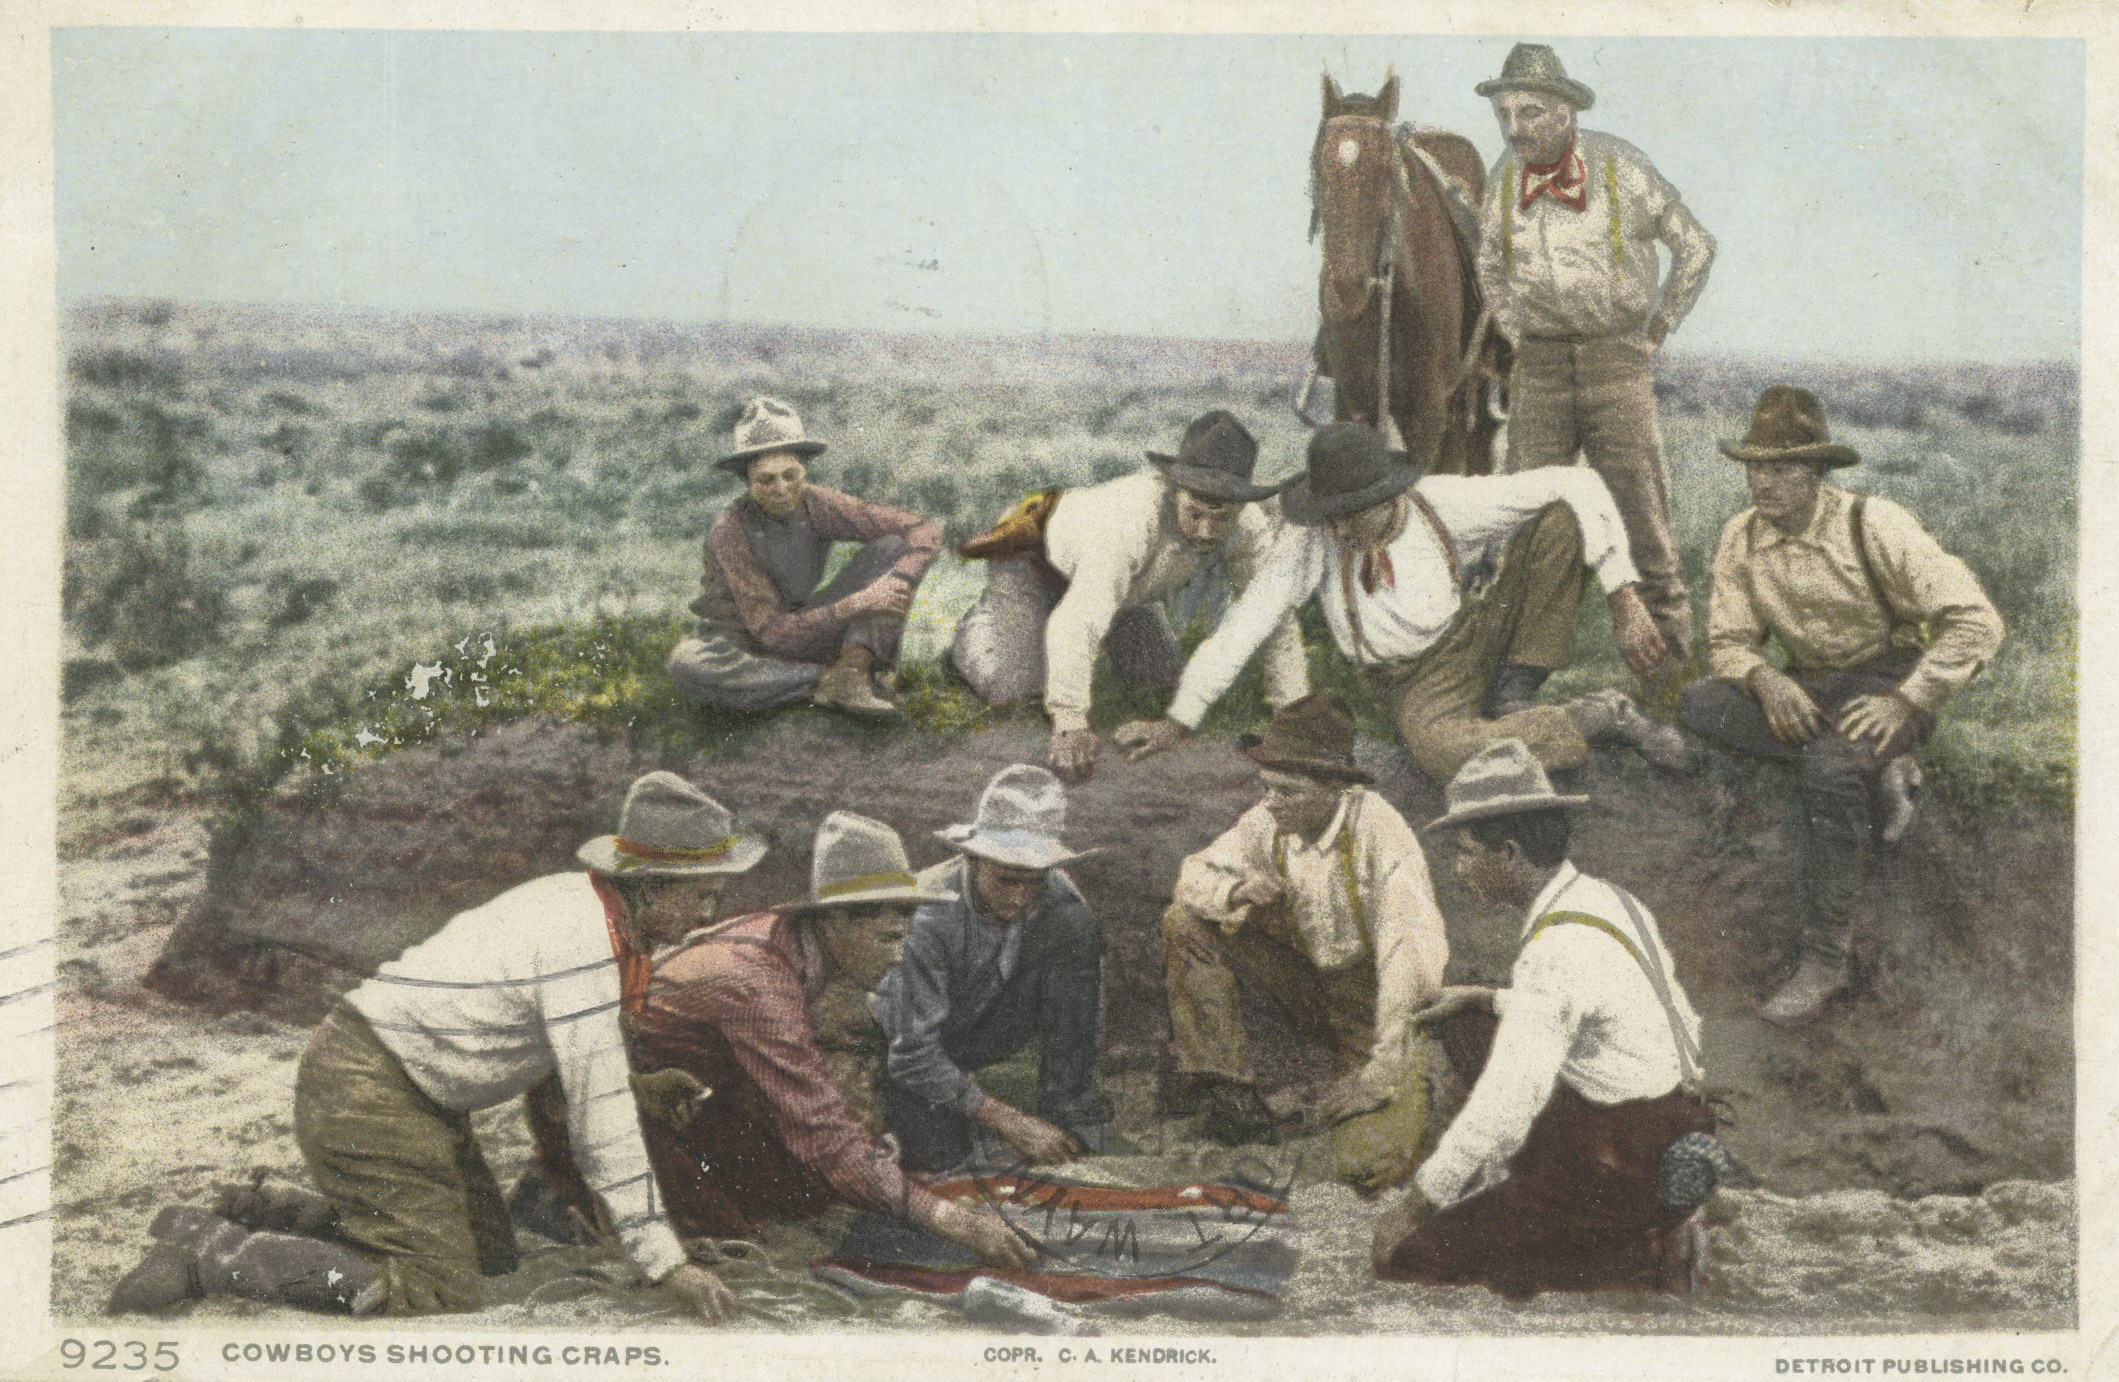 Cowboys shooting craps (Detroit Publishing Company Postcards; NY Public Library Digital Collection)